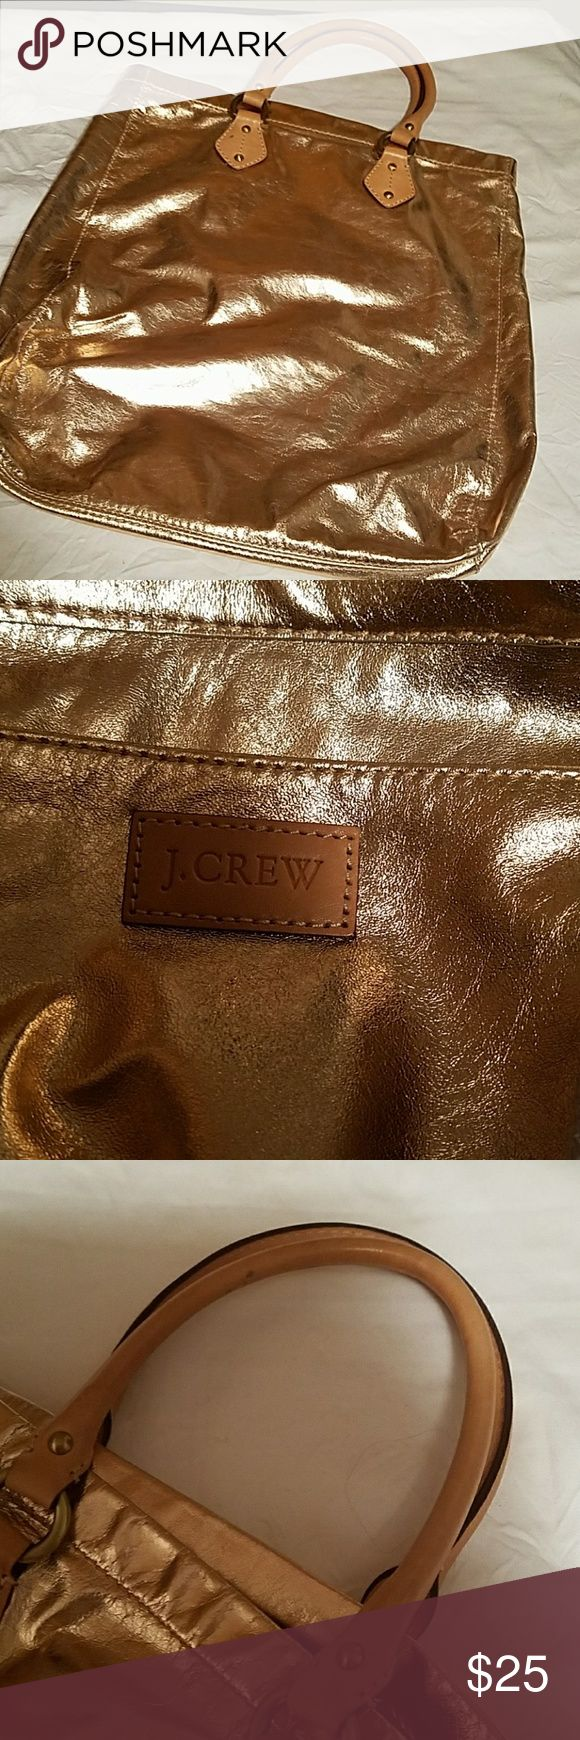 "J crew  rosegold tote.. Good use condition..only problem has a rub/discoloration in one spot see last 2  pictures fir ref.size is 15""x15"". j crew  Bags Totes"